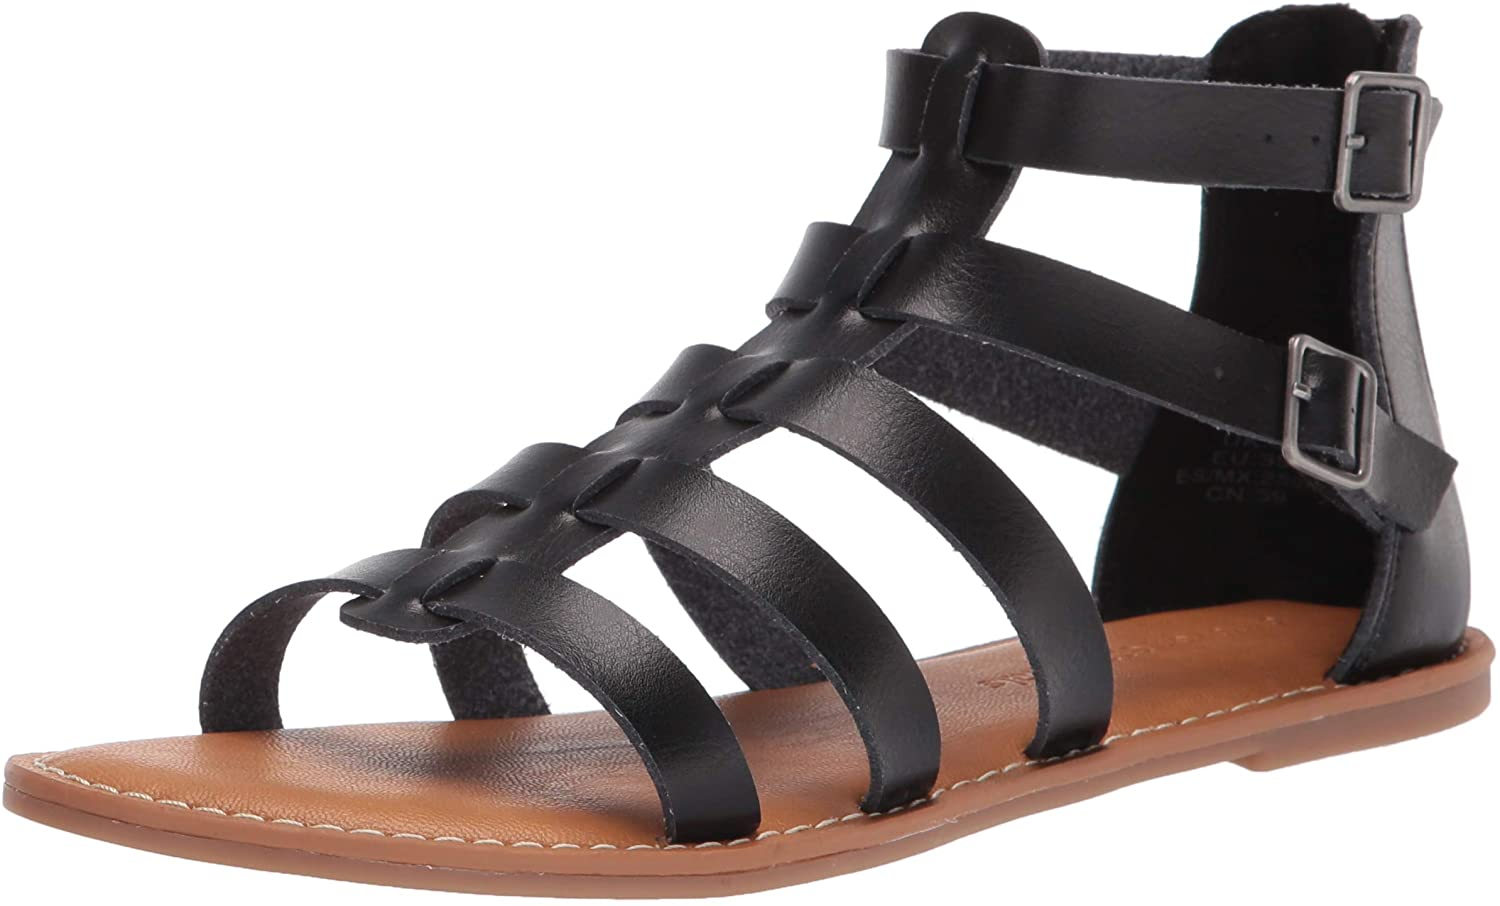 Amazon Essentials Women's Gladiator Flat Sandal